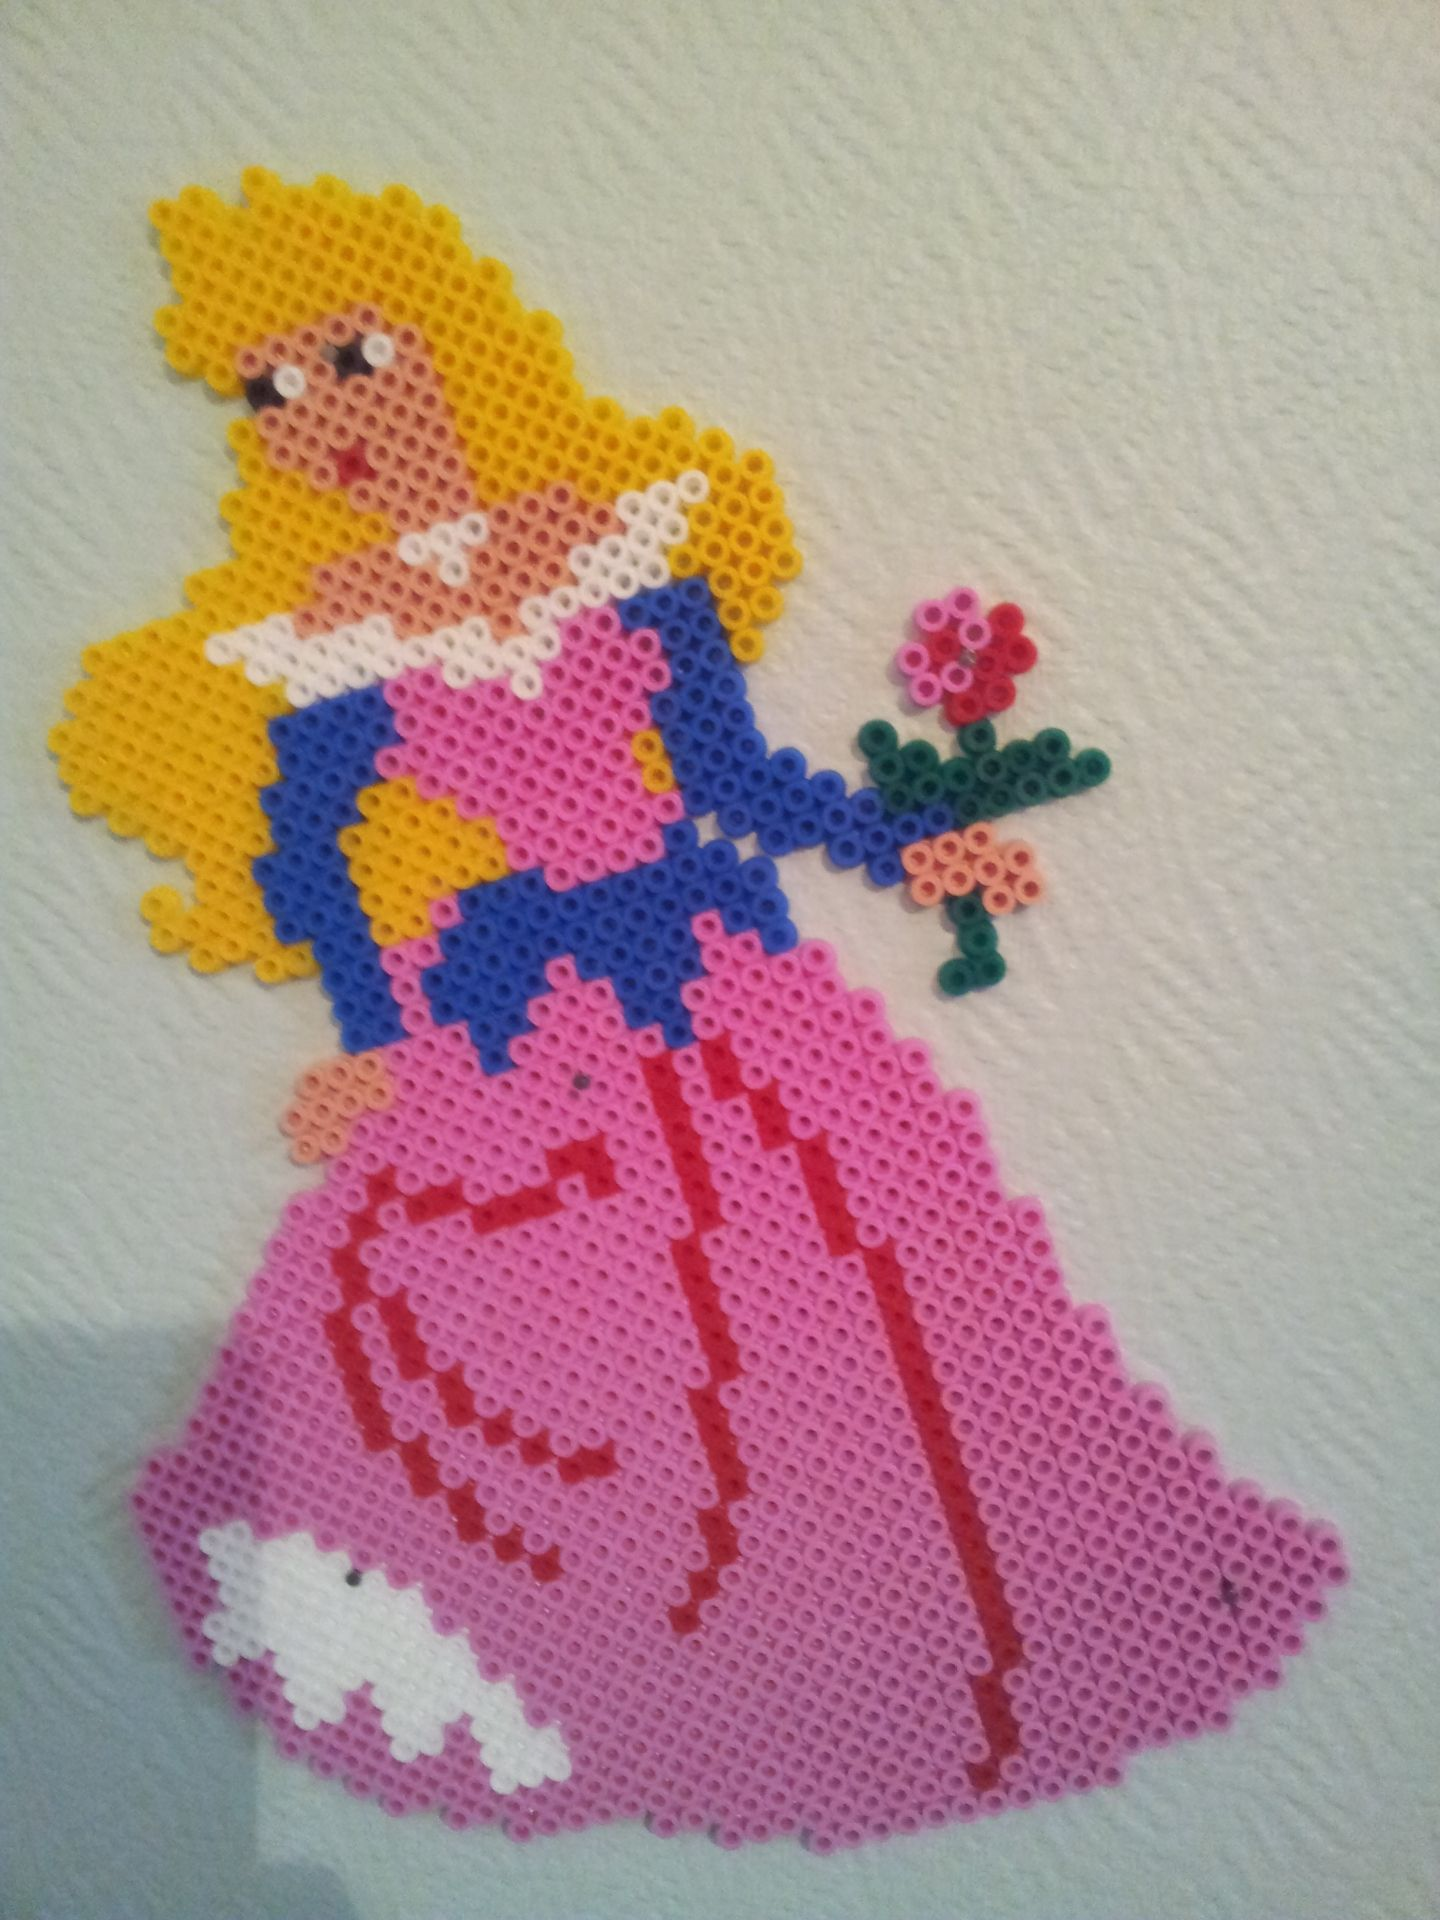 Bügelperlen Bügeln Aurora Hama Beads By Perlergirls Sleeping Beauty Bügelperlen